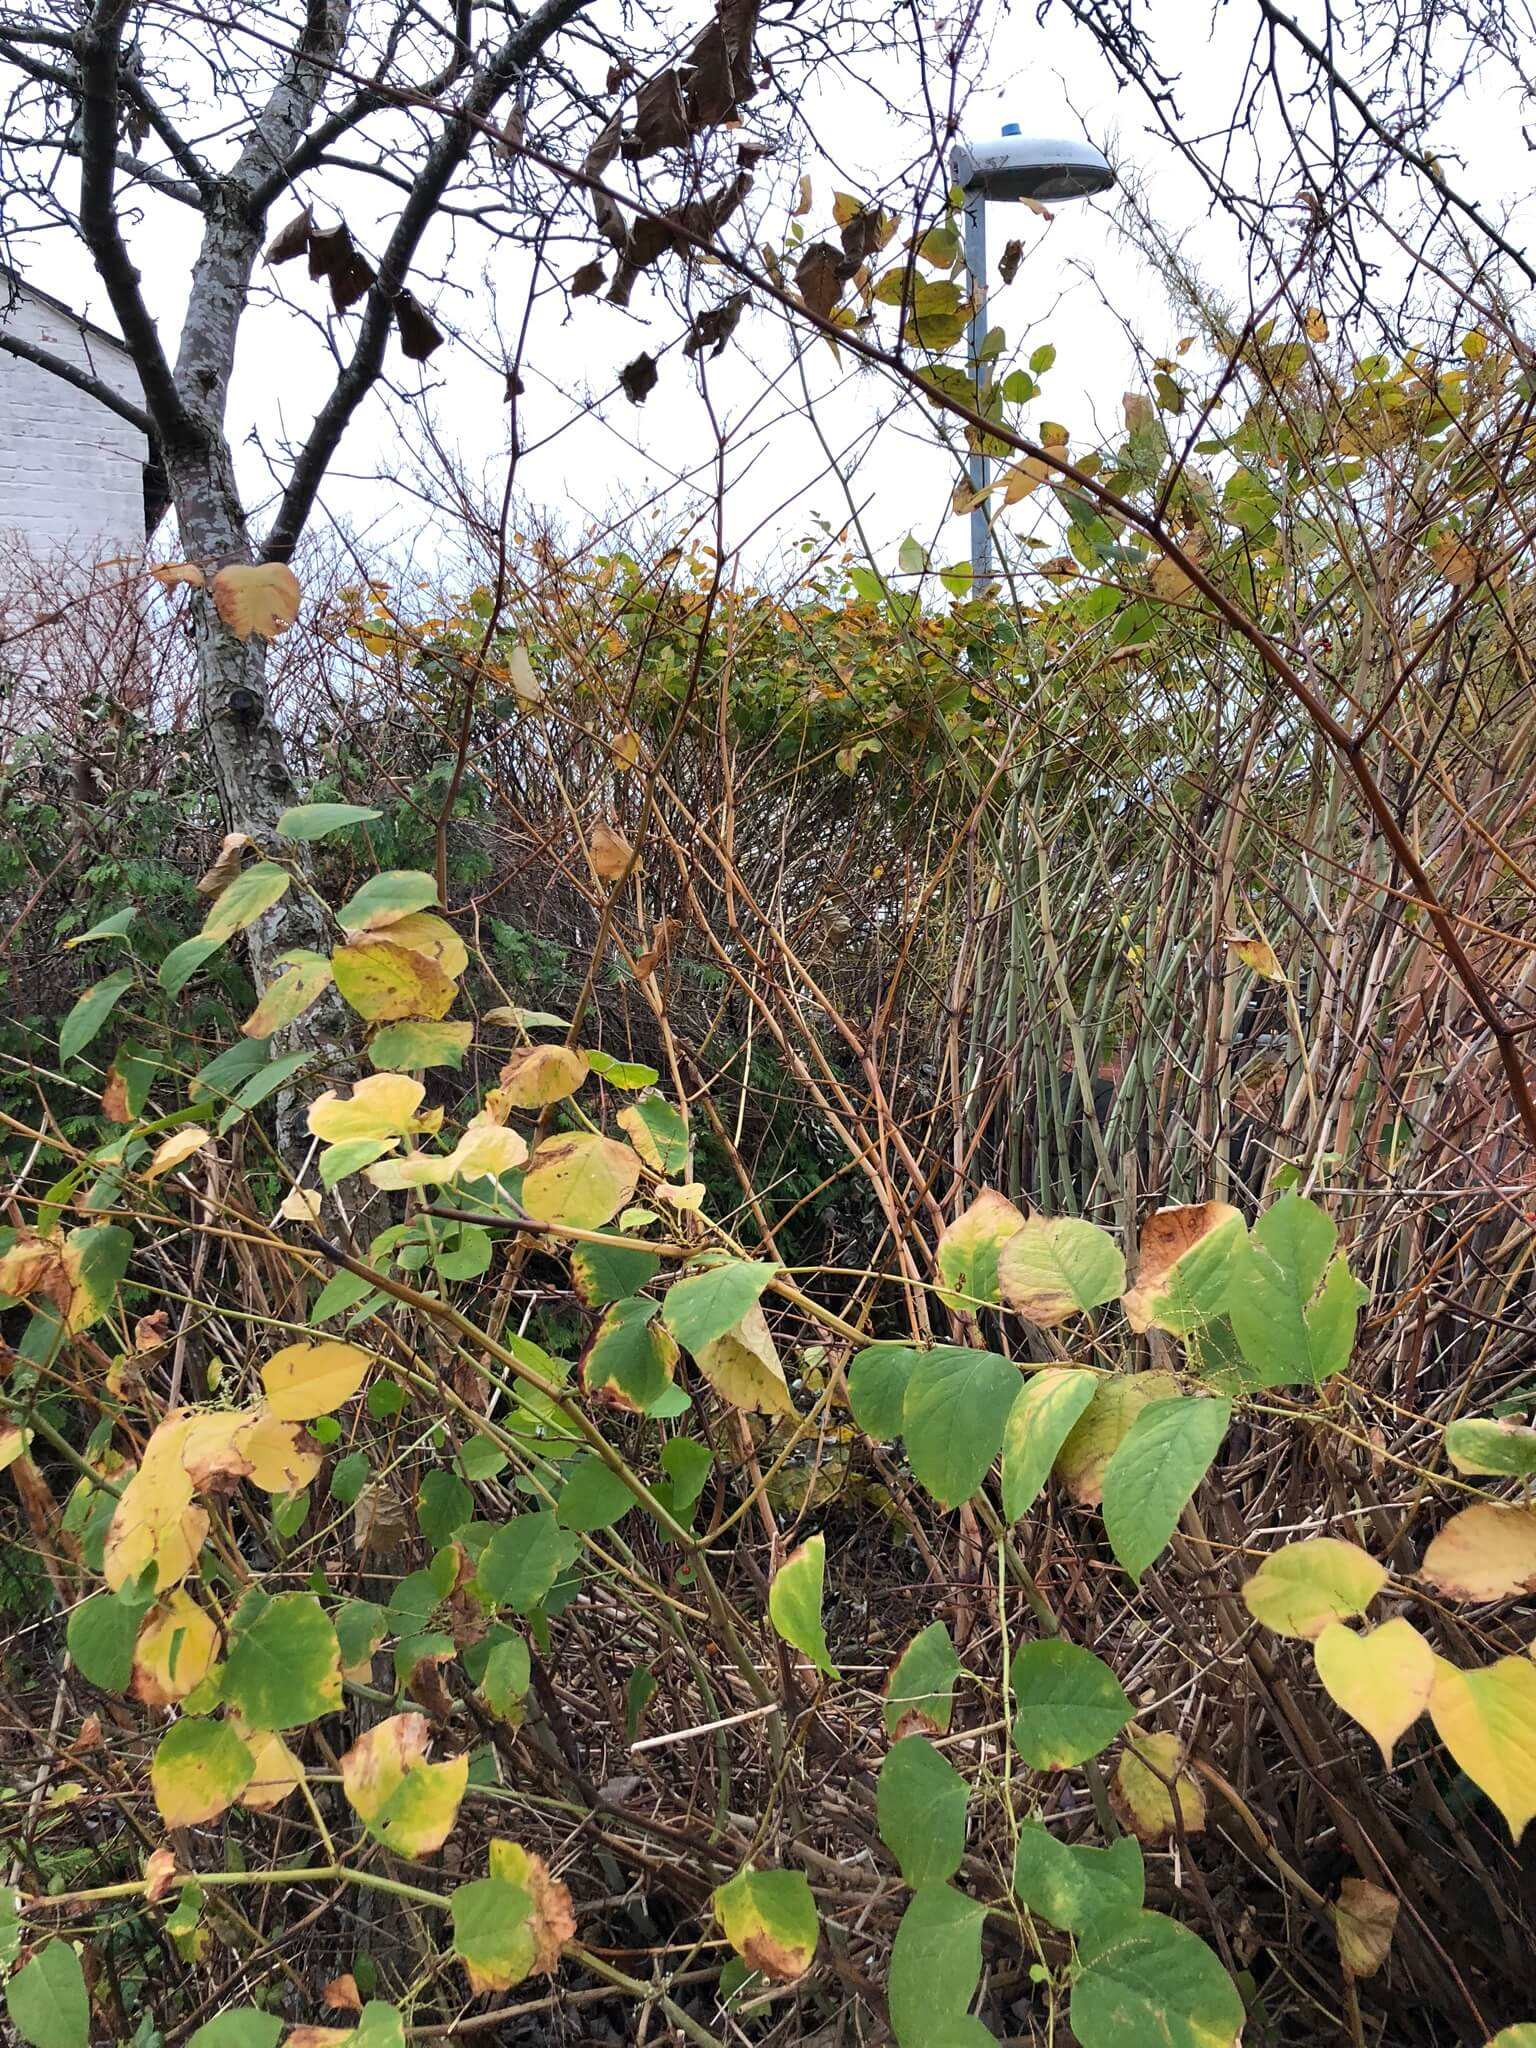 Japanese Knotweed Eradication in Oundle